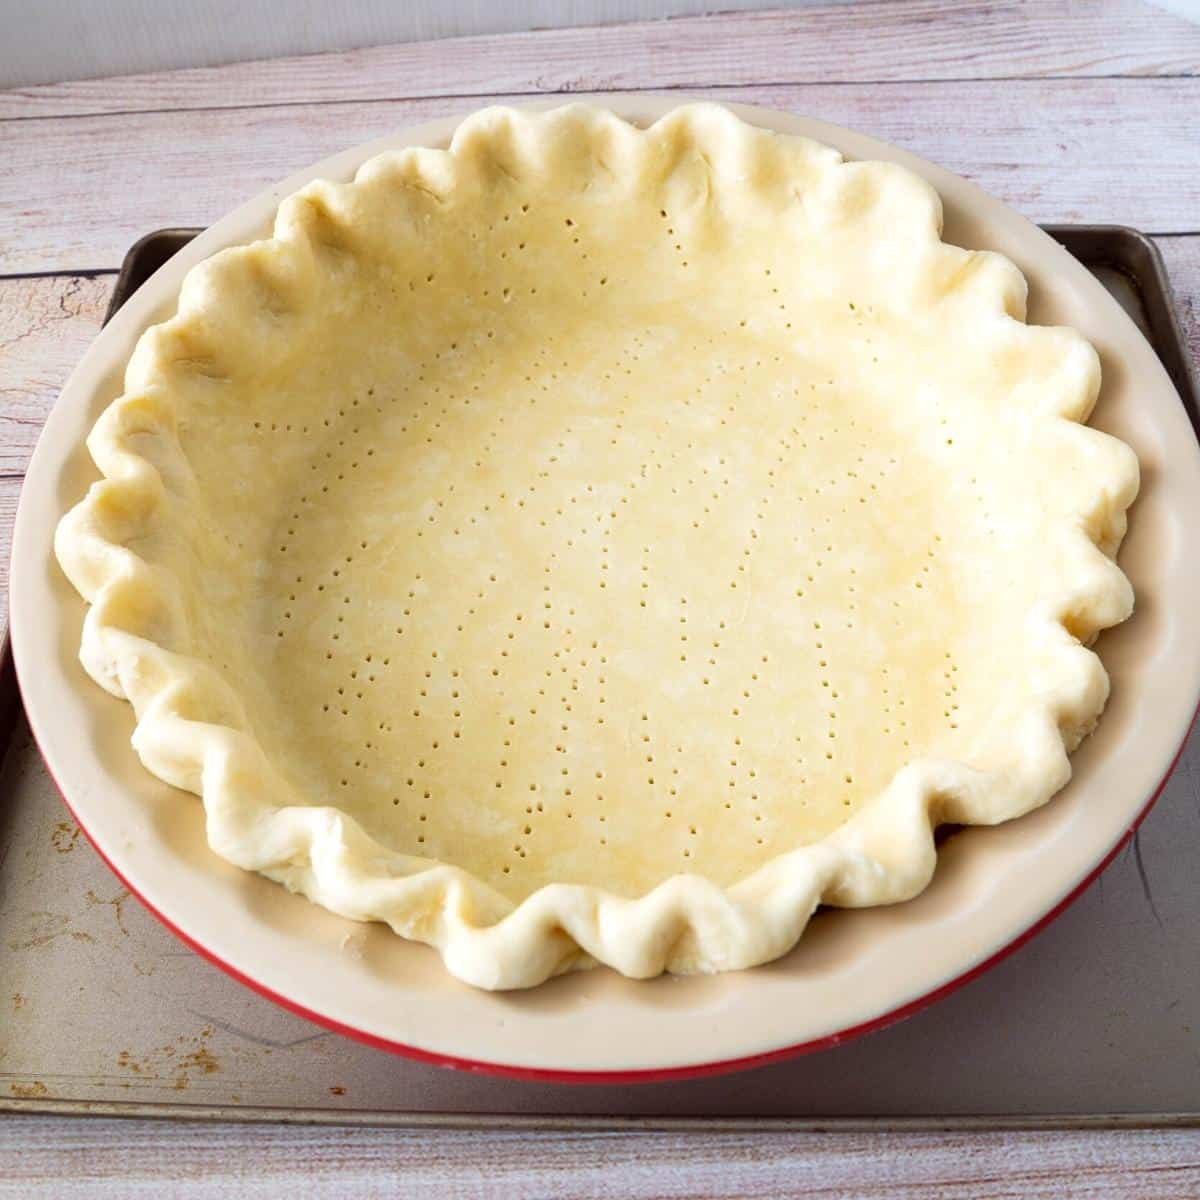 A pie pan lined with crust made from scratch.